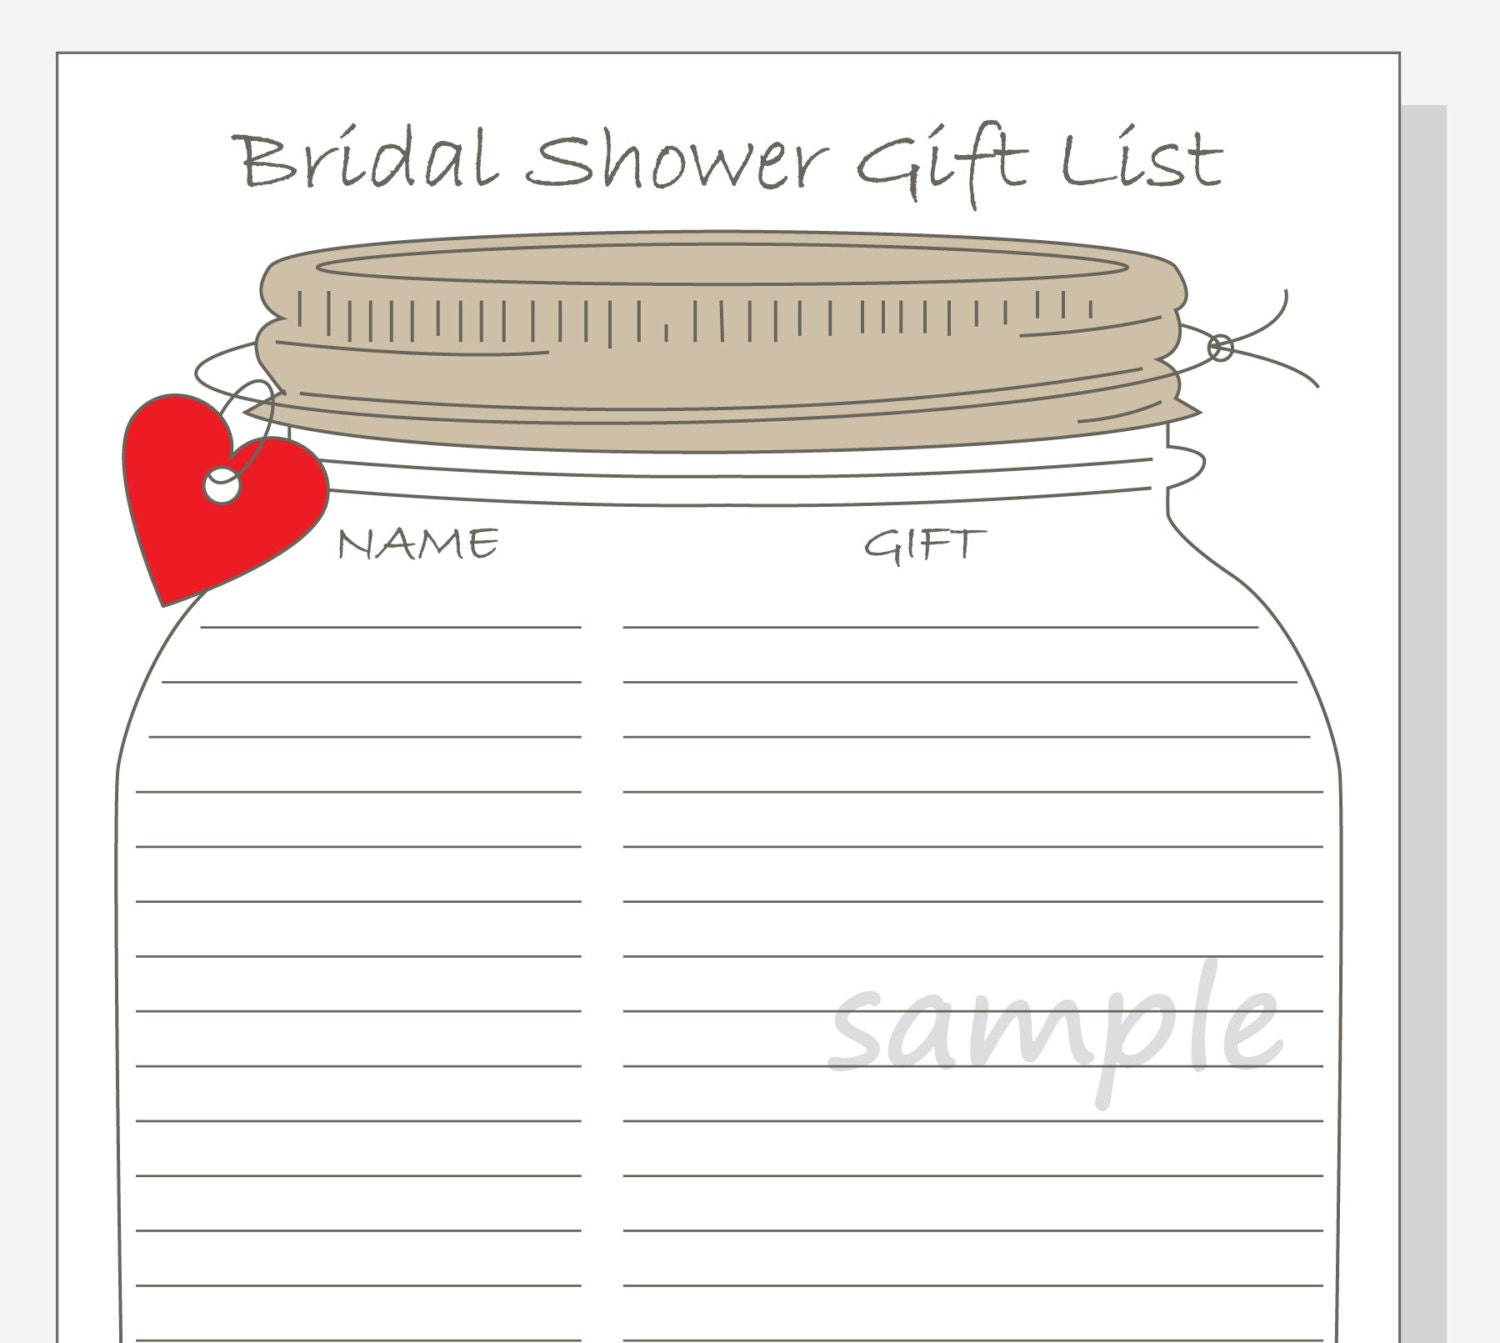 Bridal Shower Gift List Printable DIY Mason Jar Design With